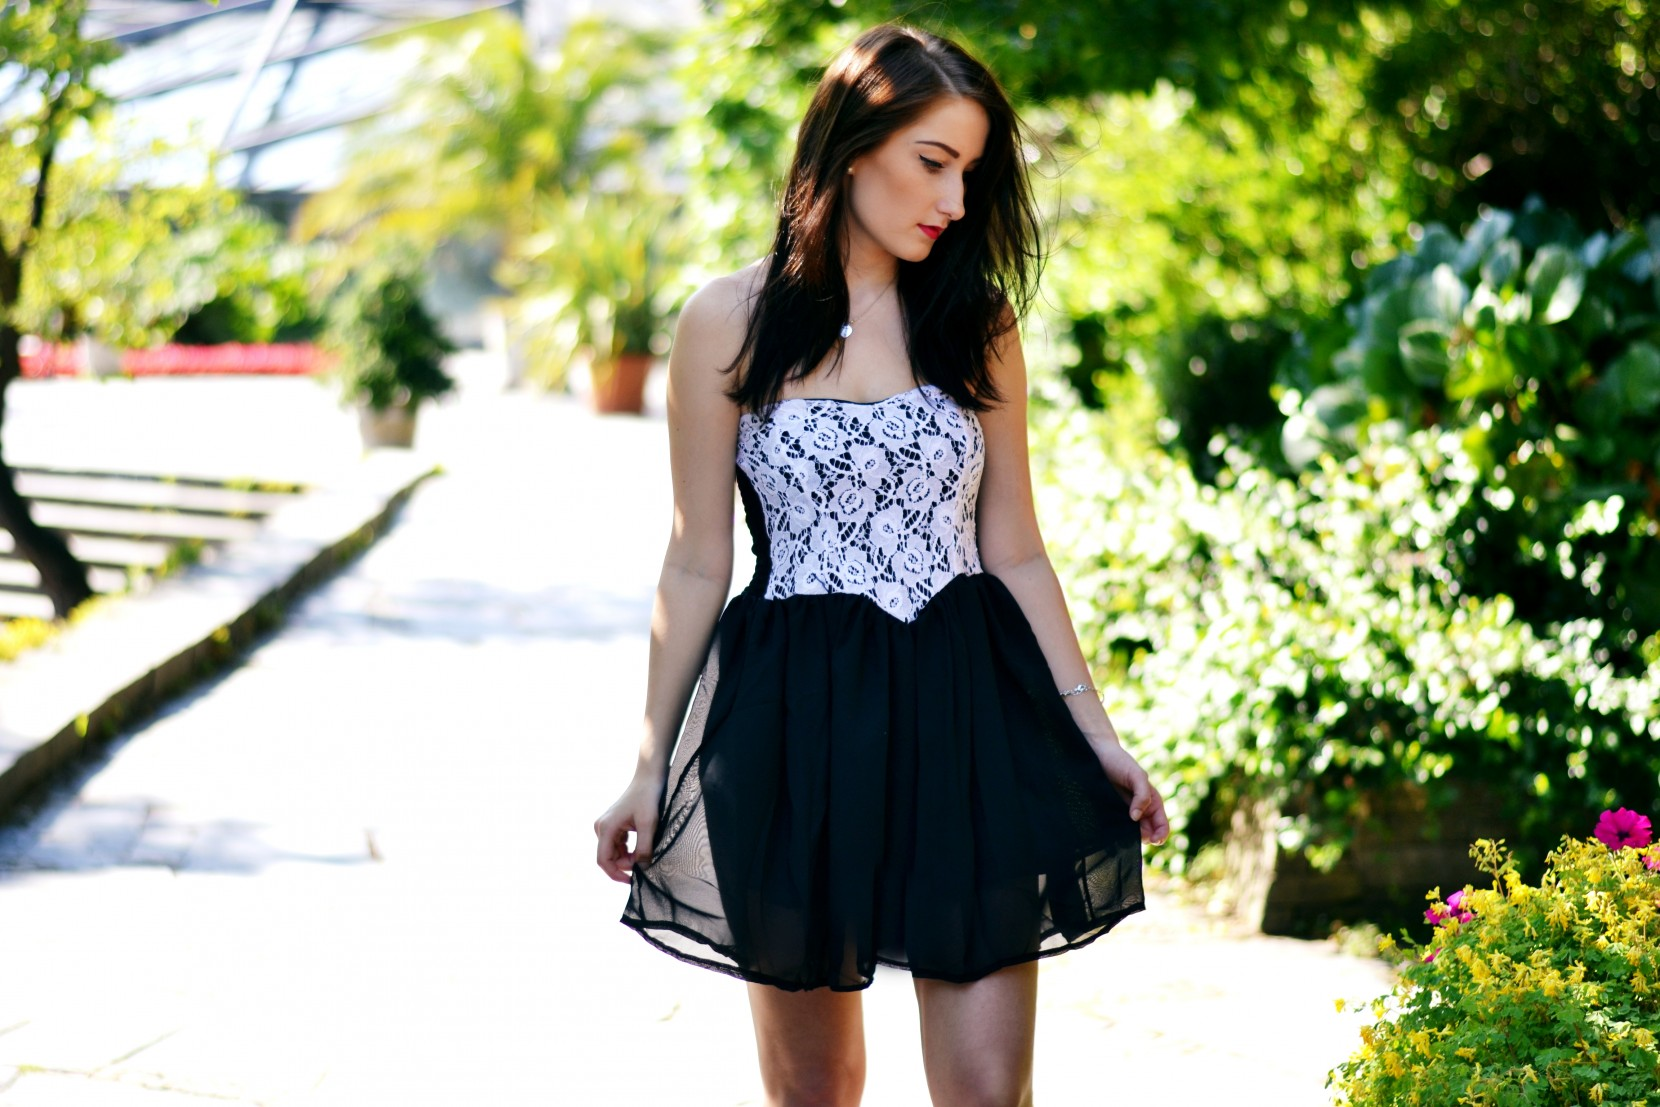 black dress with white lace